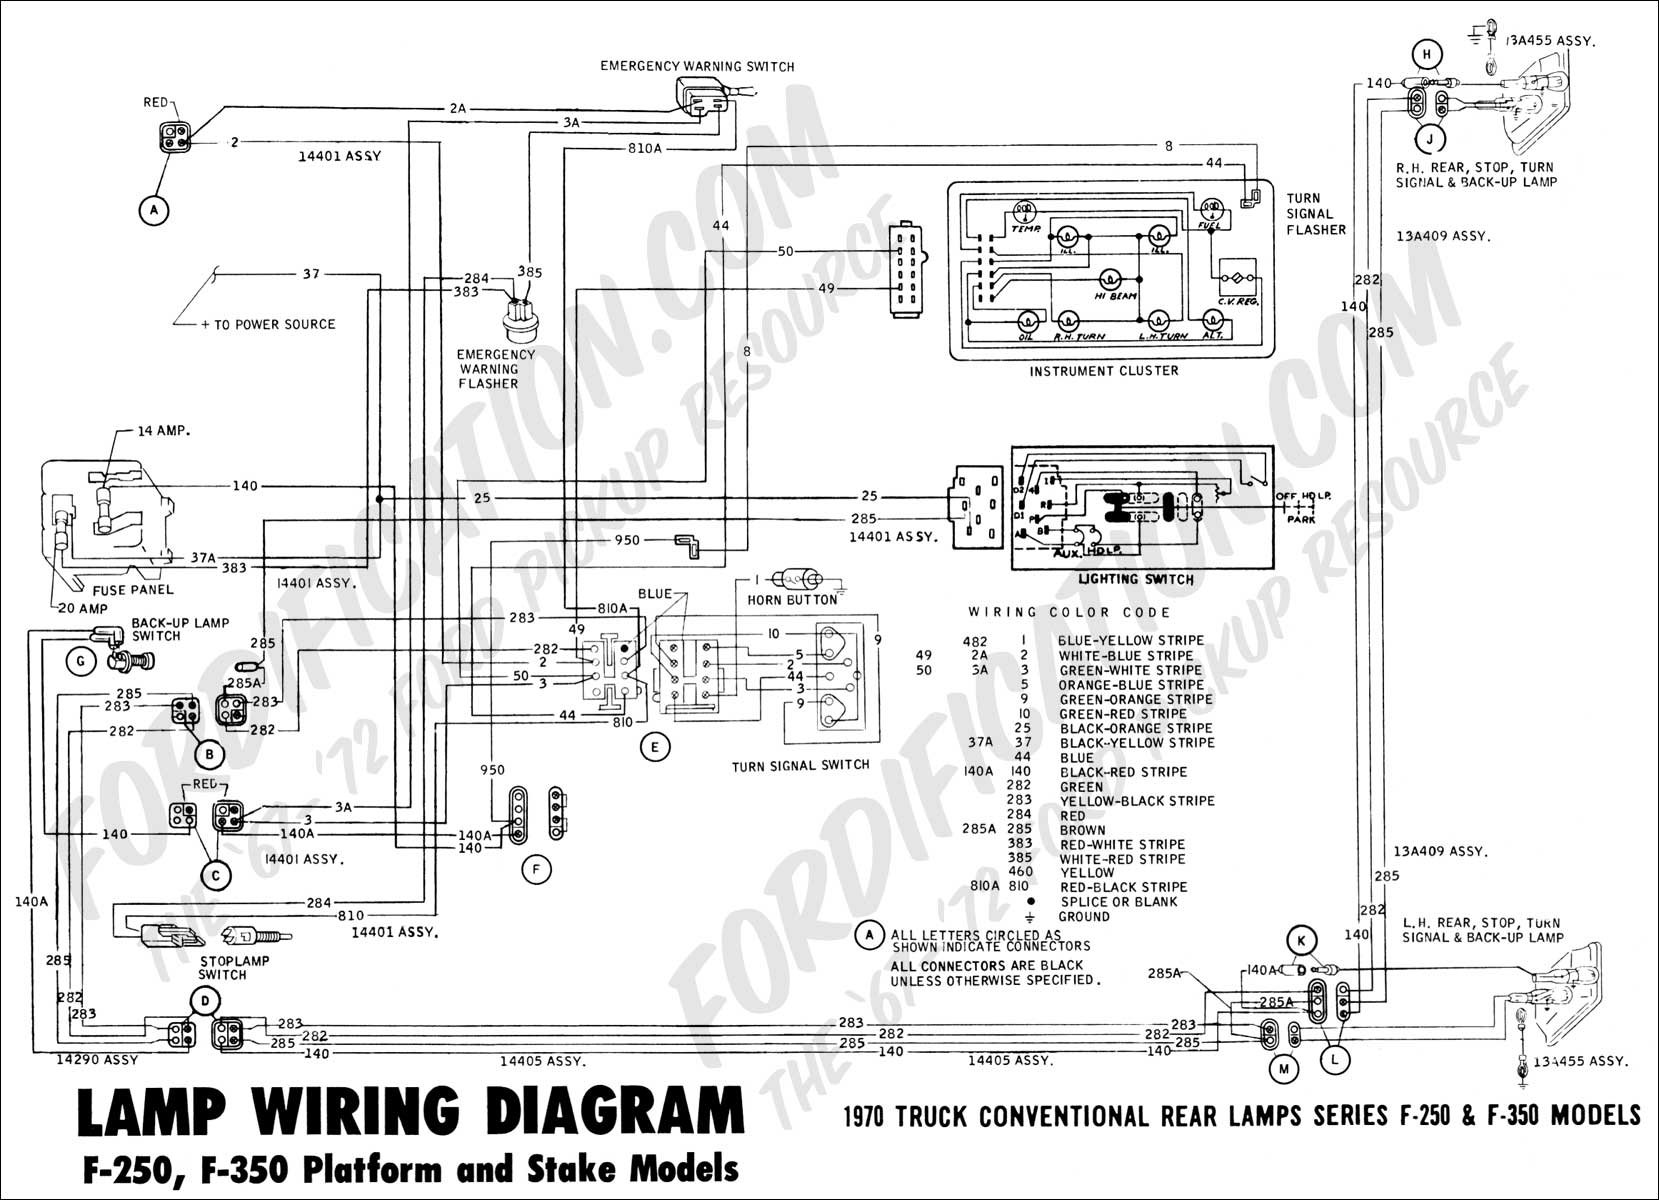 2005 ford ranger air condition fuse box diagram 2005 ford ranger 4 0 fuse box diagram